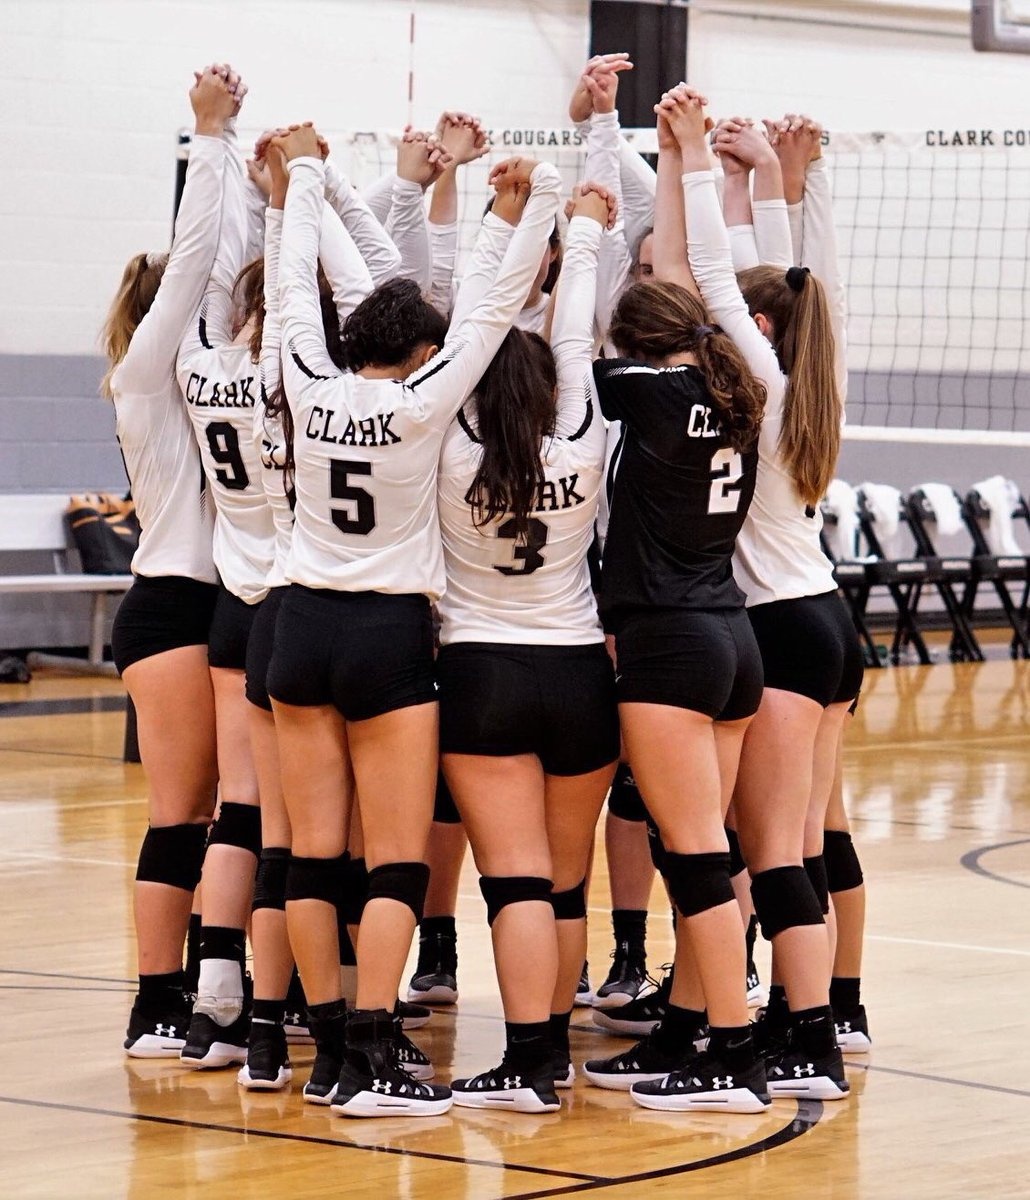 2-1 for CVB today! Started a little slow this morning, but came back with a big  3 set win over Churchill! 5-1 so far at @Volleypalooza1! #cvb2019 #LetsRock<br>http://pic.twitter.com/A6XICgwpiK